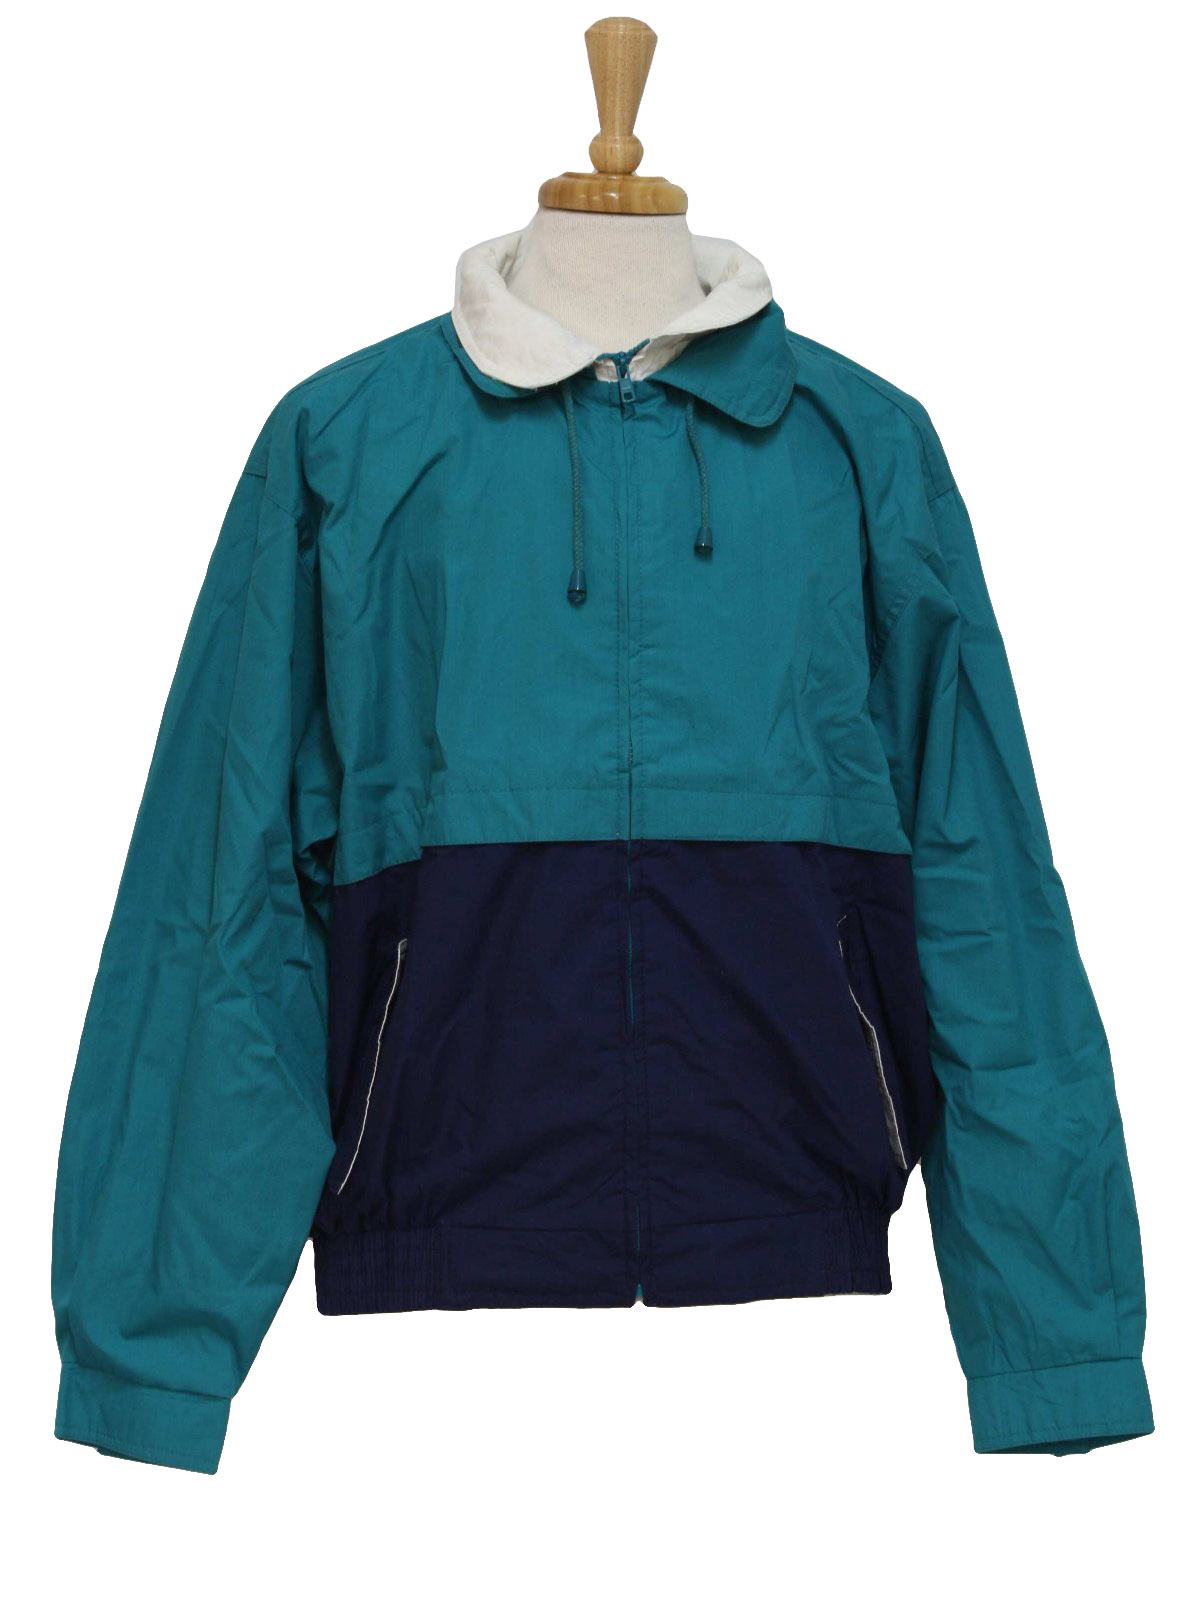 1980s Vintage Jacket 80s 30 Knots Mens Teal And Navy